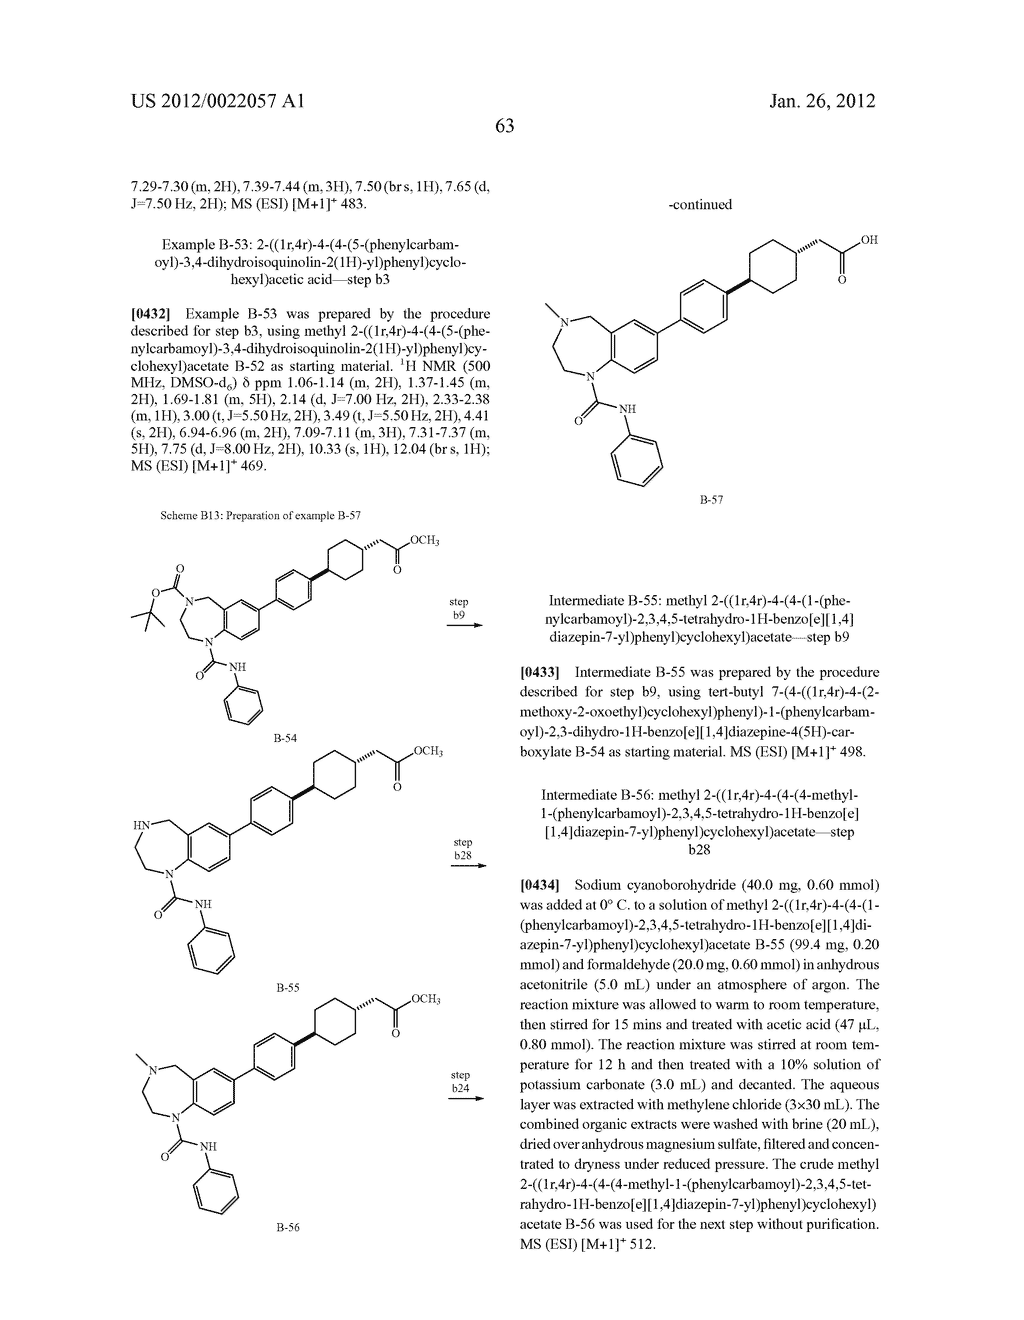 BICYCLIC COMPOUNDS AS INHIBITORS OF DIACYGLYCEROL ACYLTRANSFERASE - diagram, schematic, and image 64